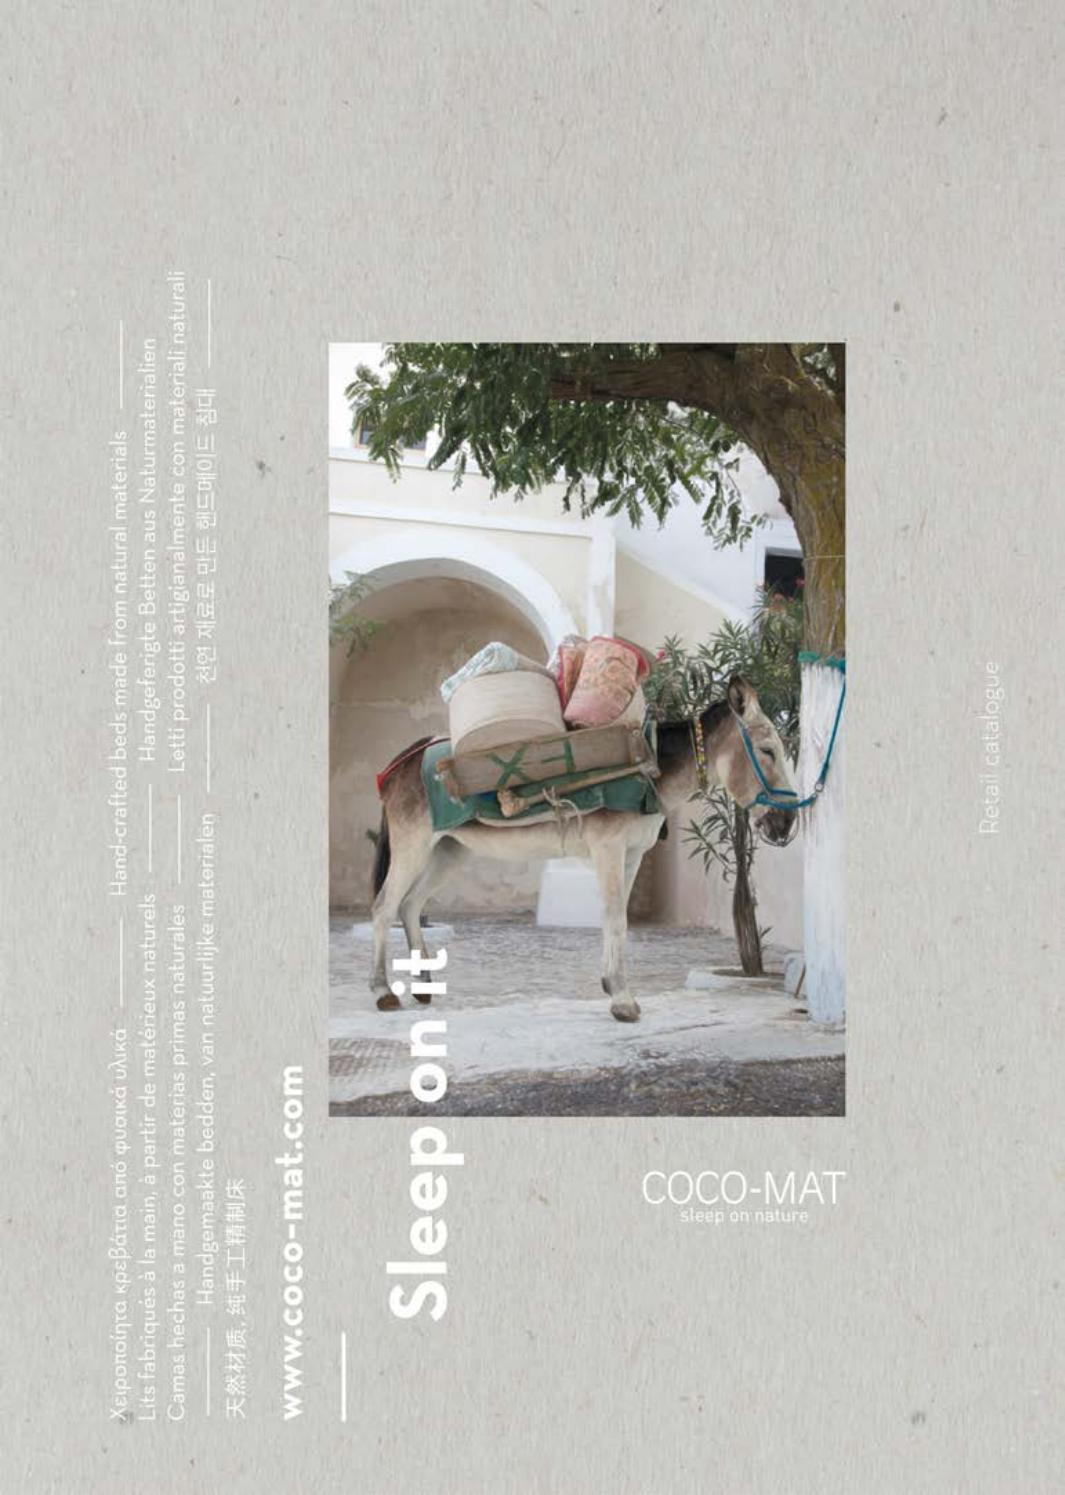 COCO-MAT Catalogue 2016_new_Εn_Sp_It_ 2016 new by COCO-MAT - issuu